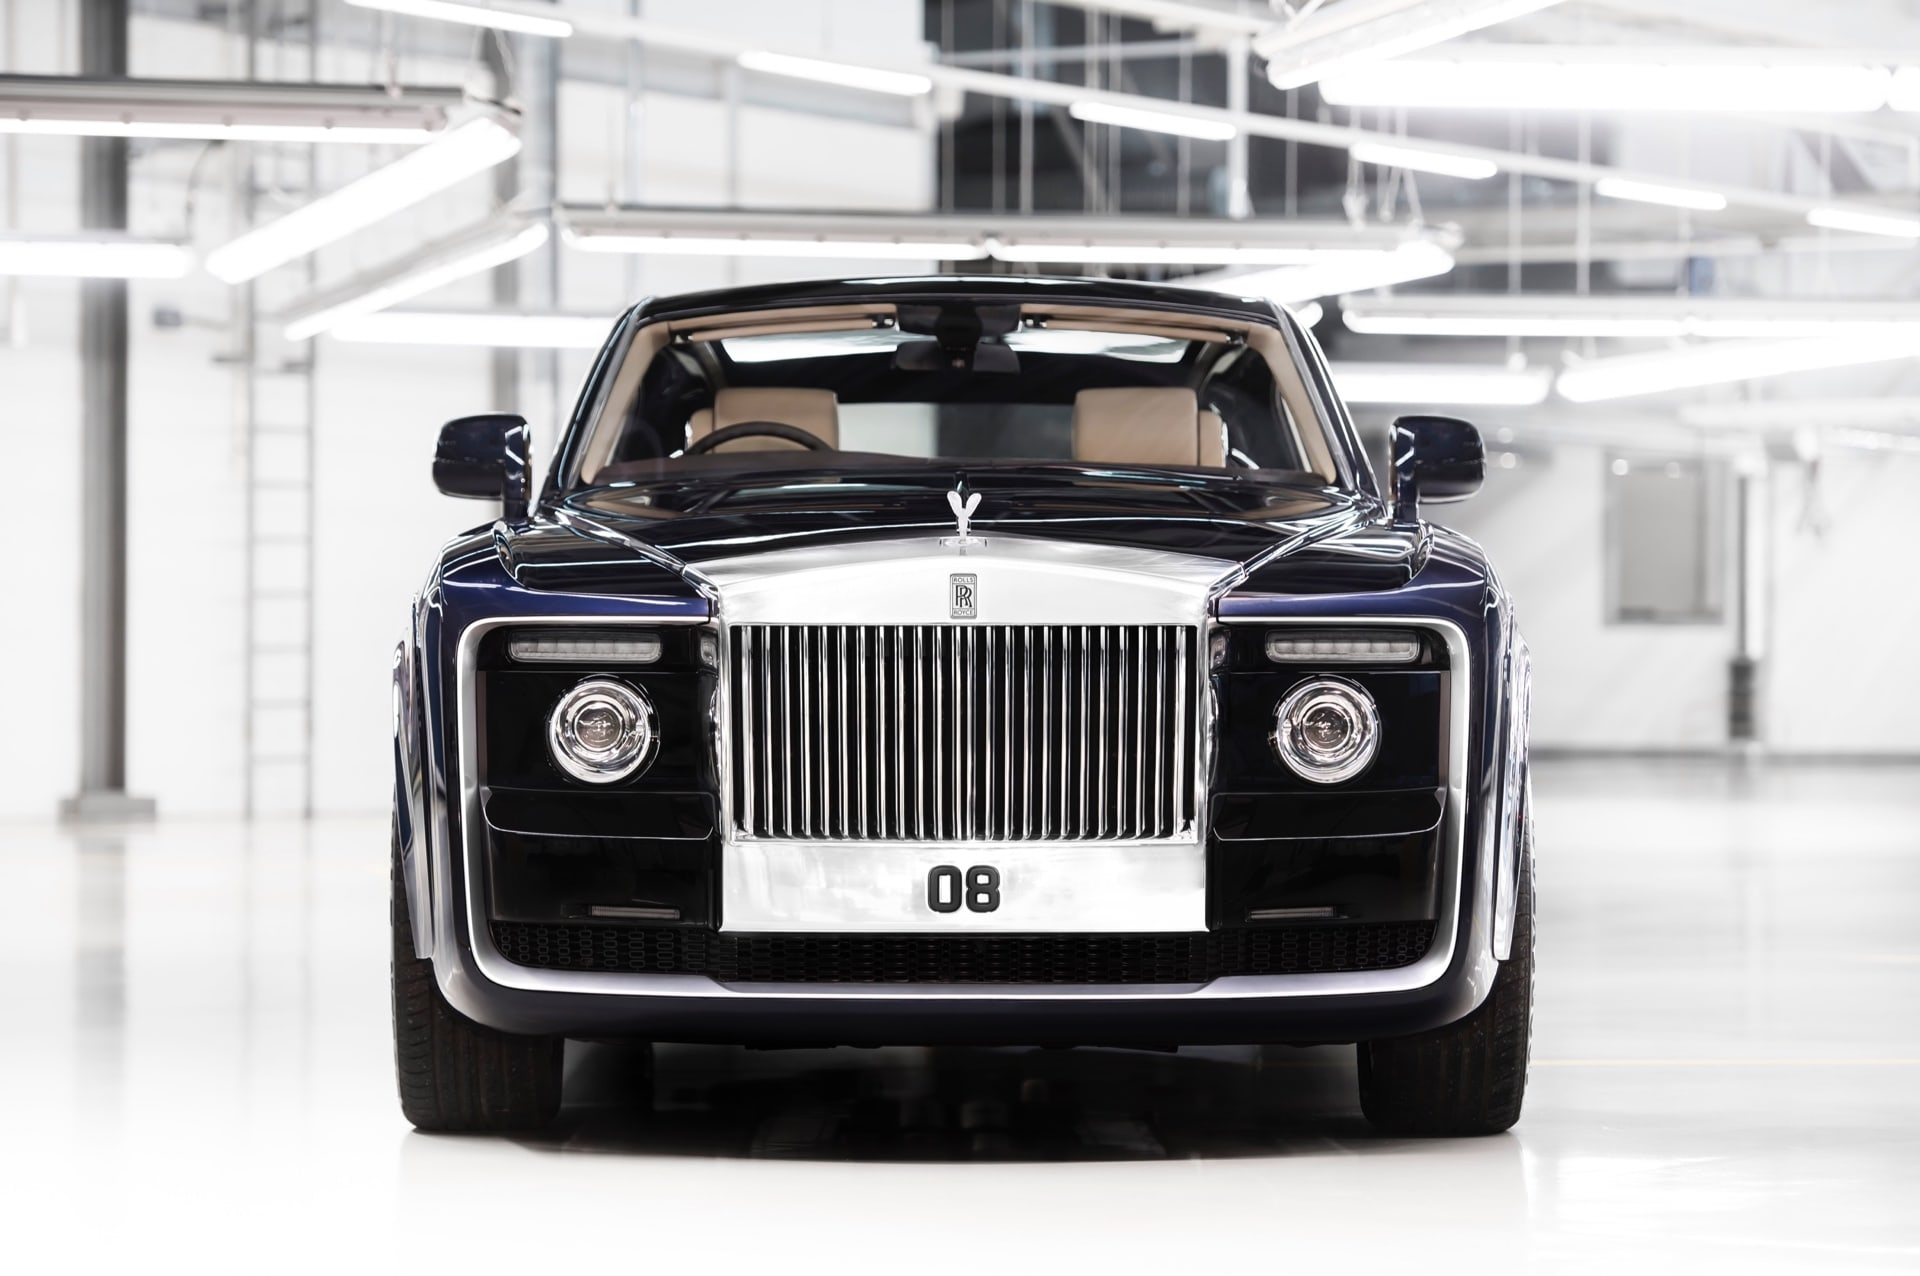 Front grille of Rolls-Royce Sweptail